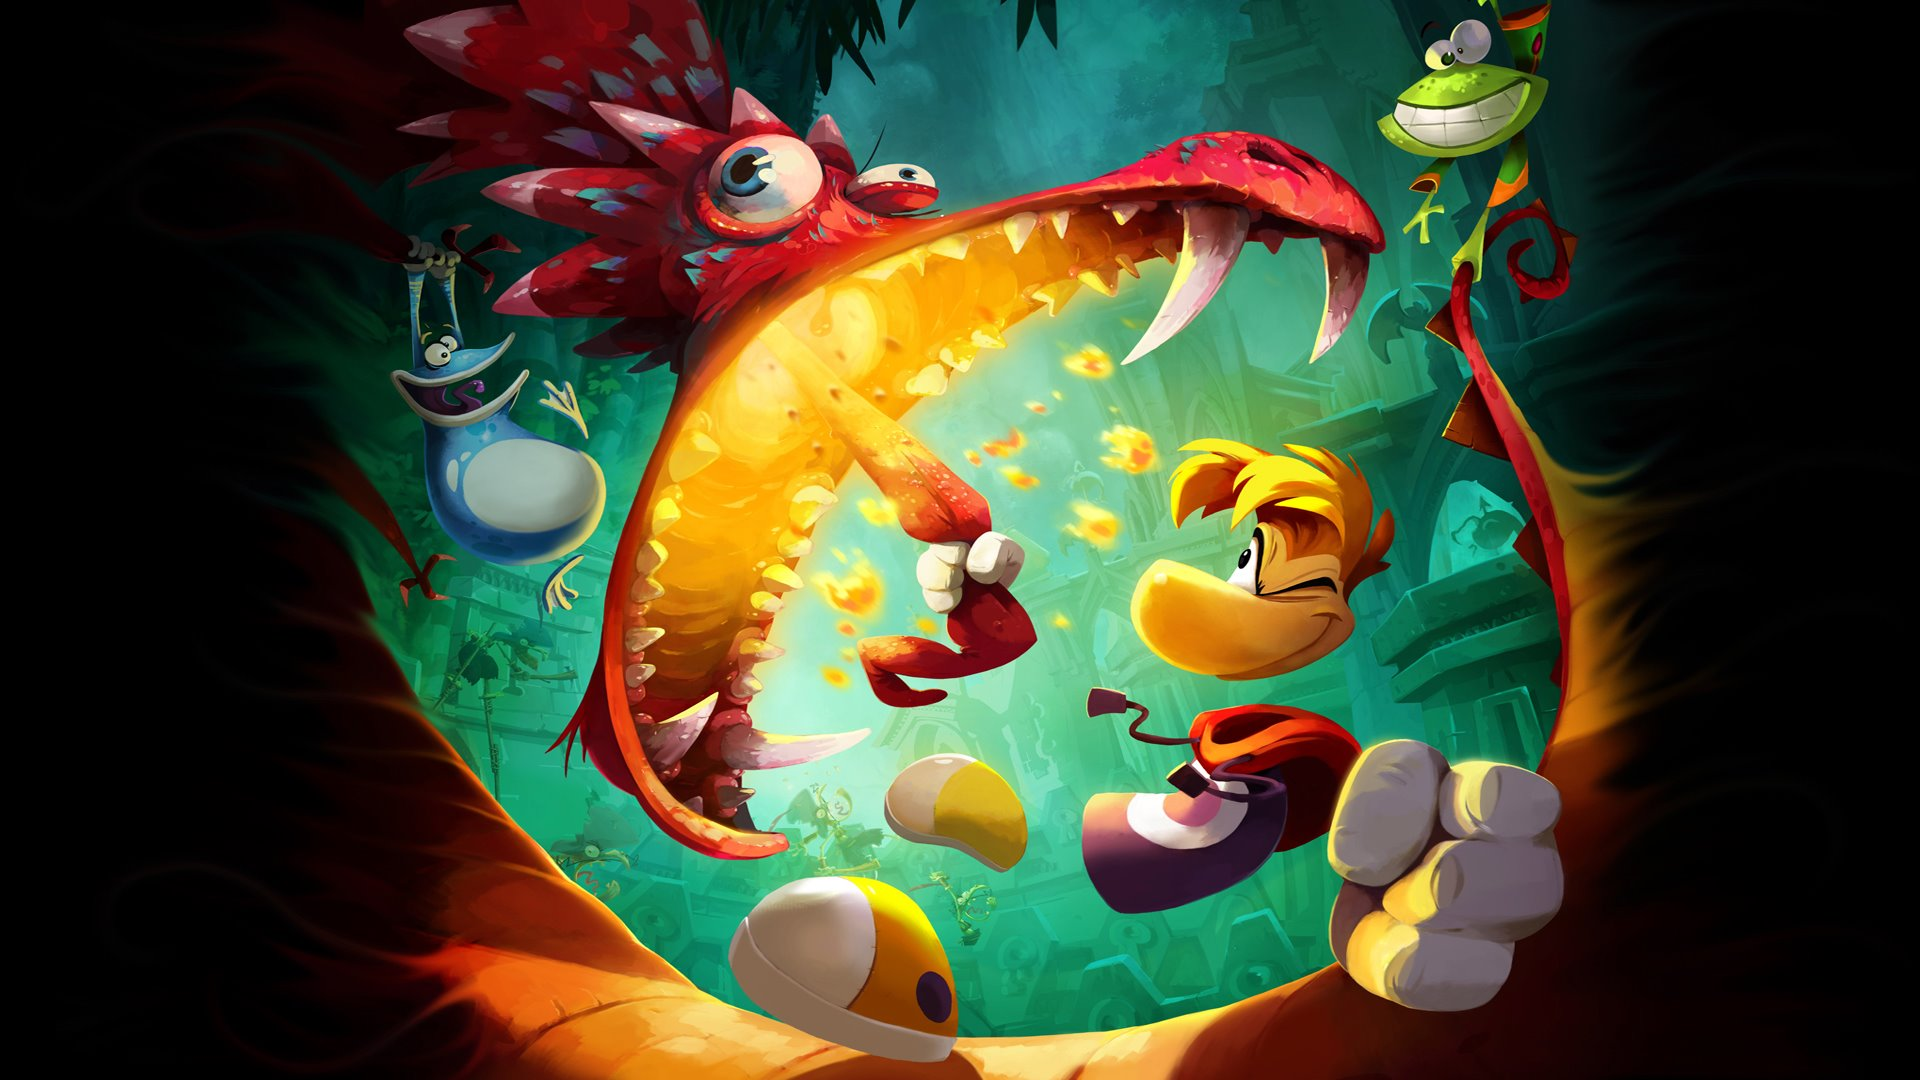 Rayman Joins Super Smash Bros For Wii U3DS As A Trophy